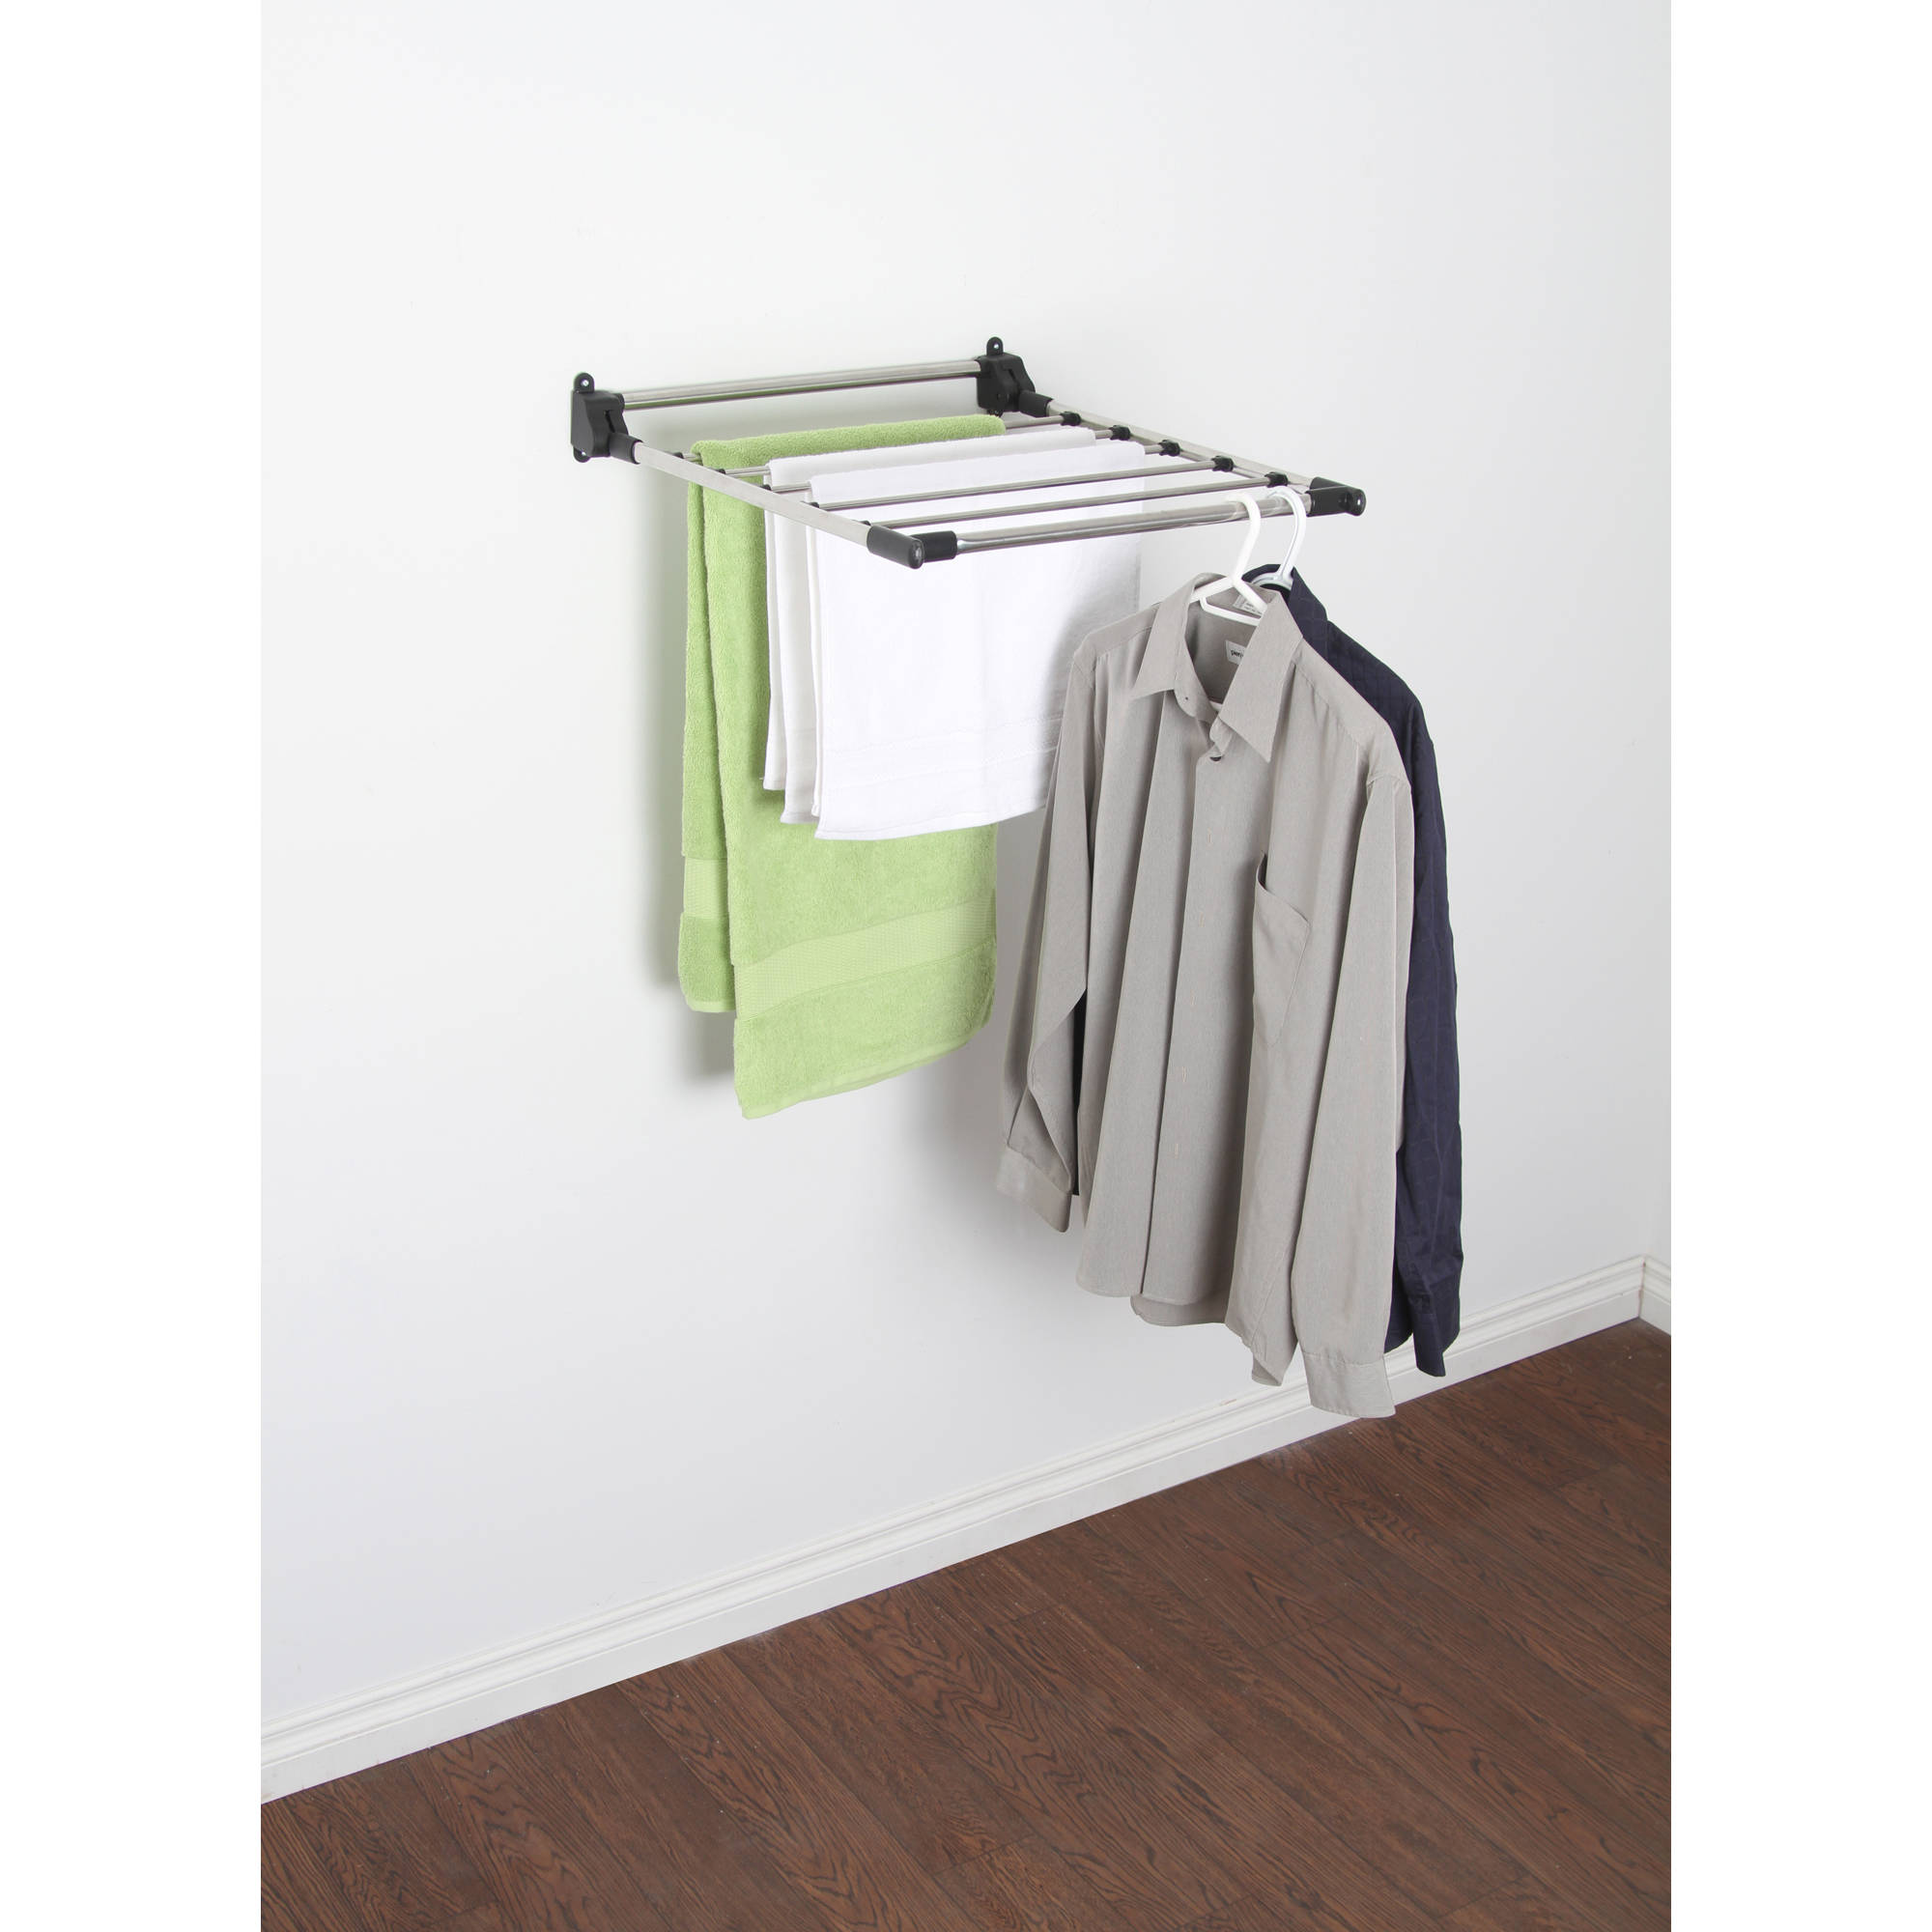 Laundry Wall Hanger Wall Drying Rack Mount Clothes Laundry Hanger Room Mounted Space